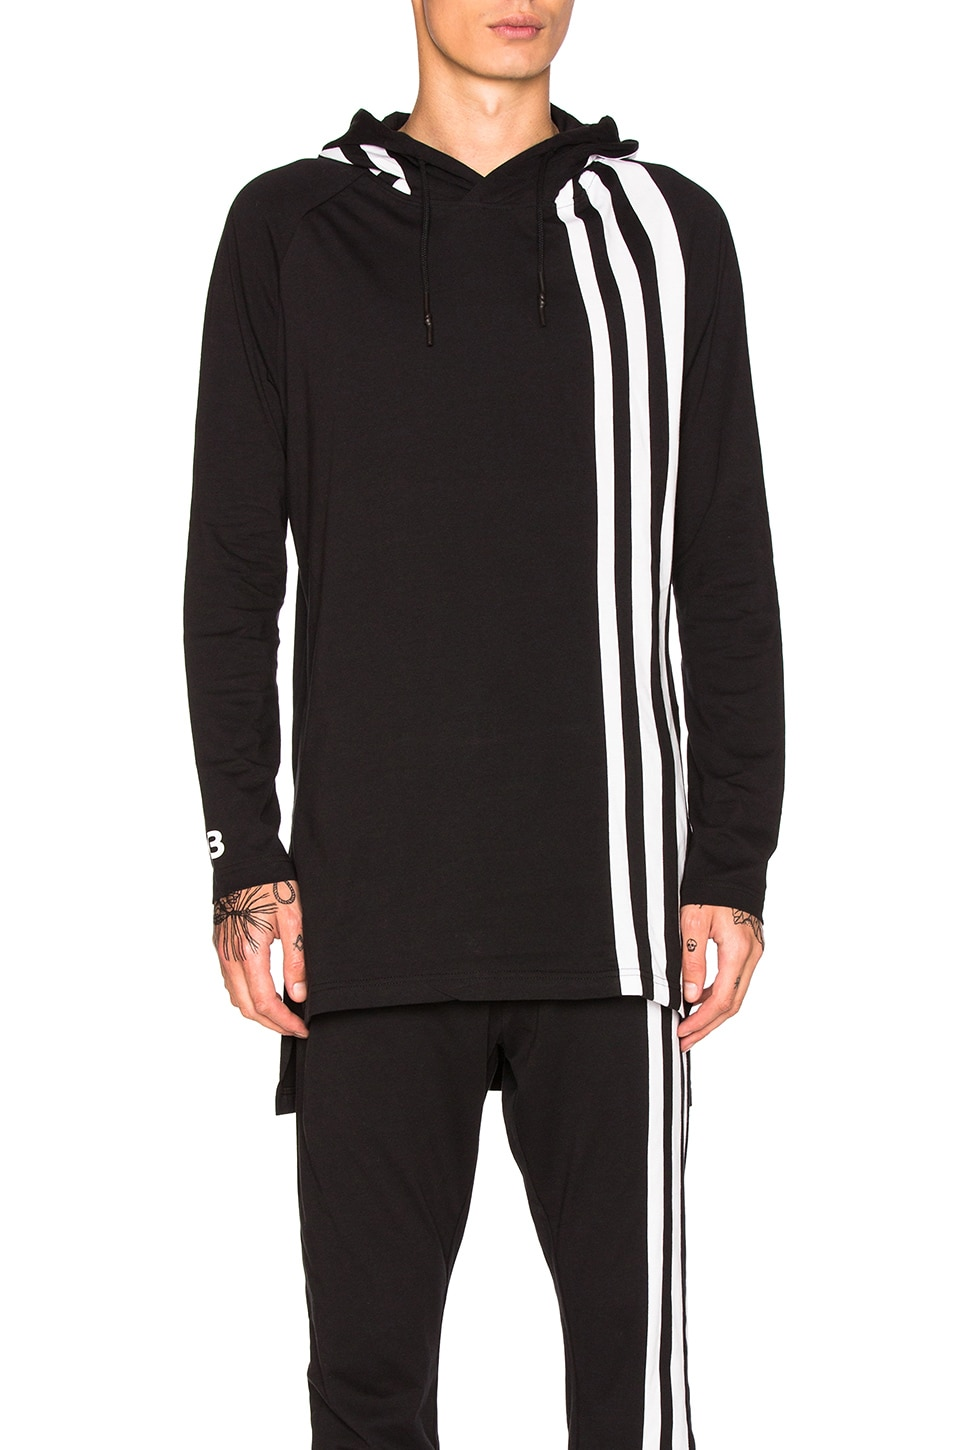 Photo of 3 Stripes Hoodie by Y-3 Yohji Yamamoto men clothes